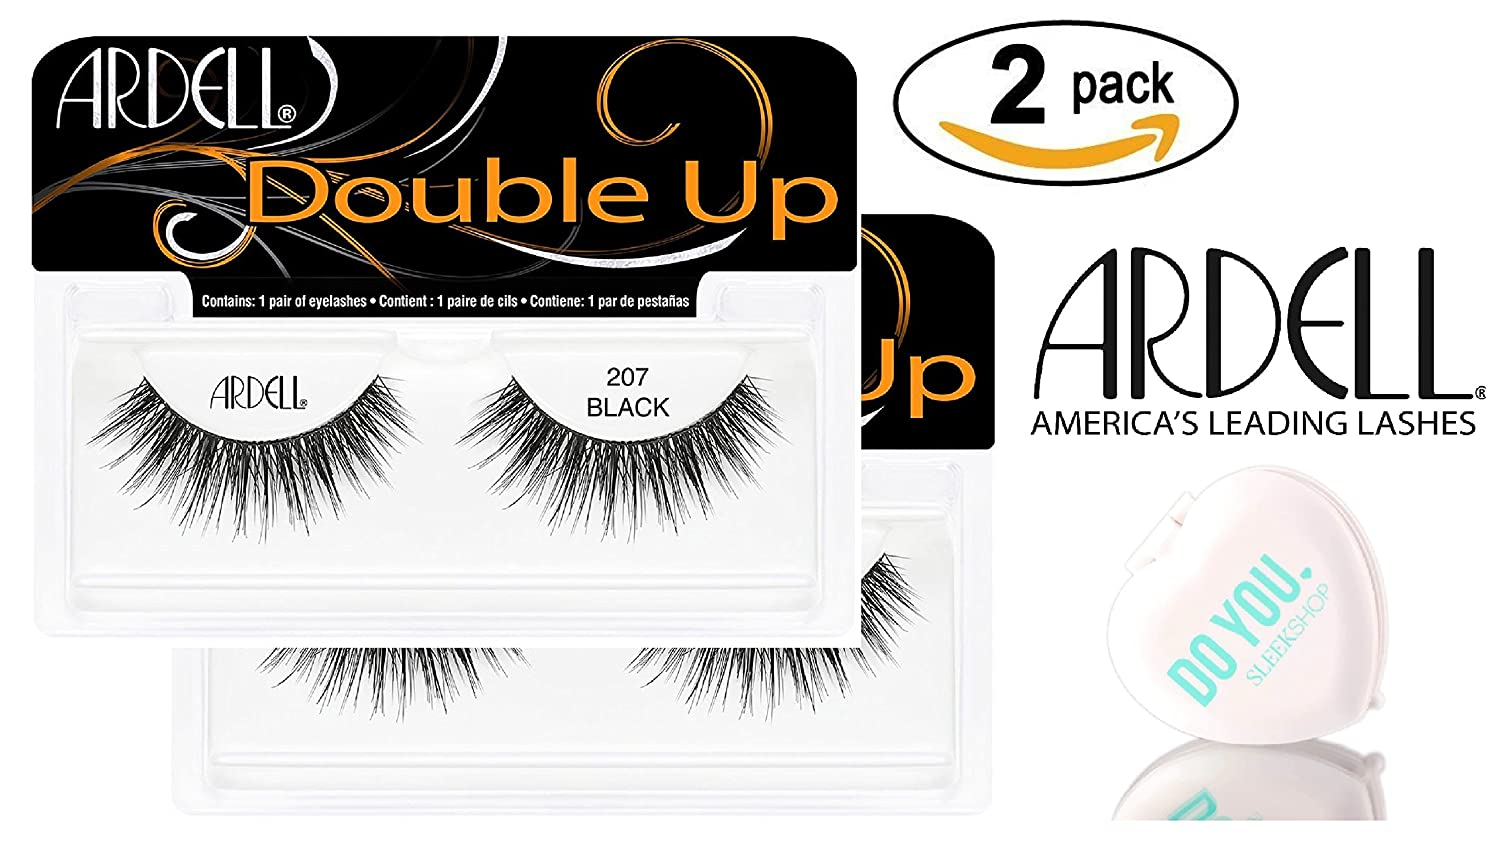 56669b137f0 Amazon.com : Ardell Professional DOUBLE UP Lashes, 2-pack (with Sleek  Compact Mirror) (Double Wispies (2-pack)) : Beauty